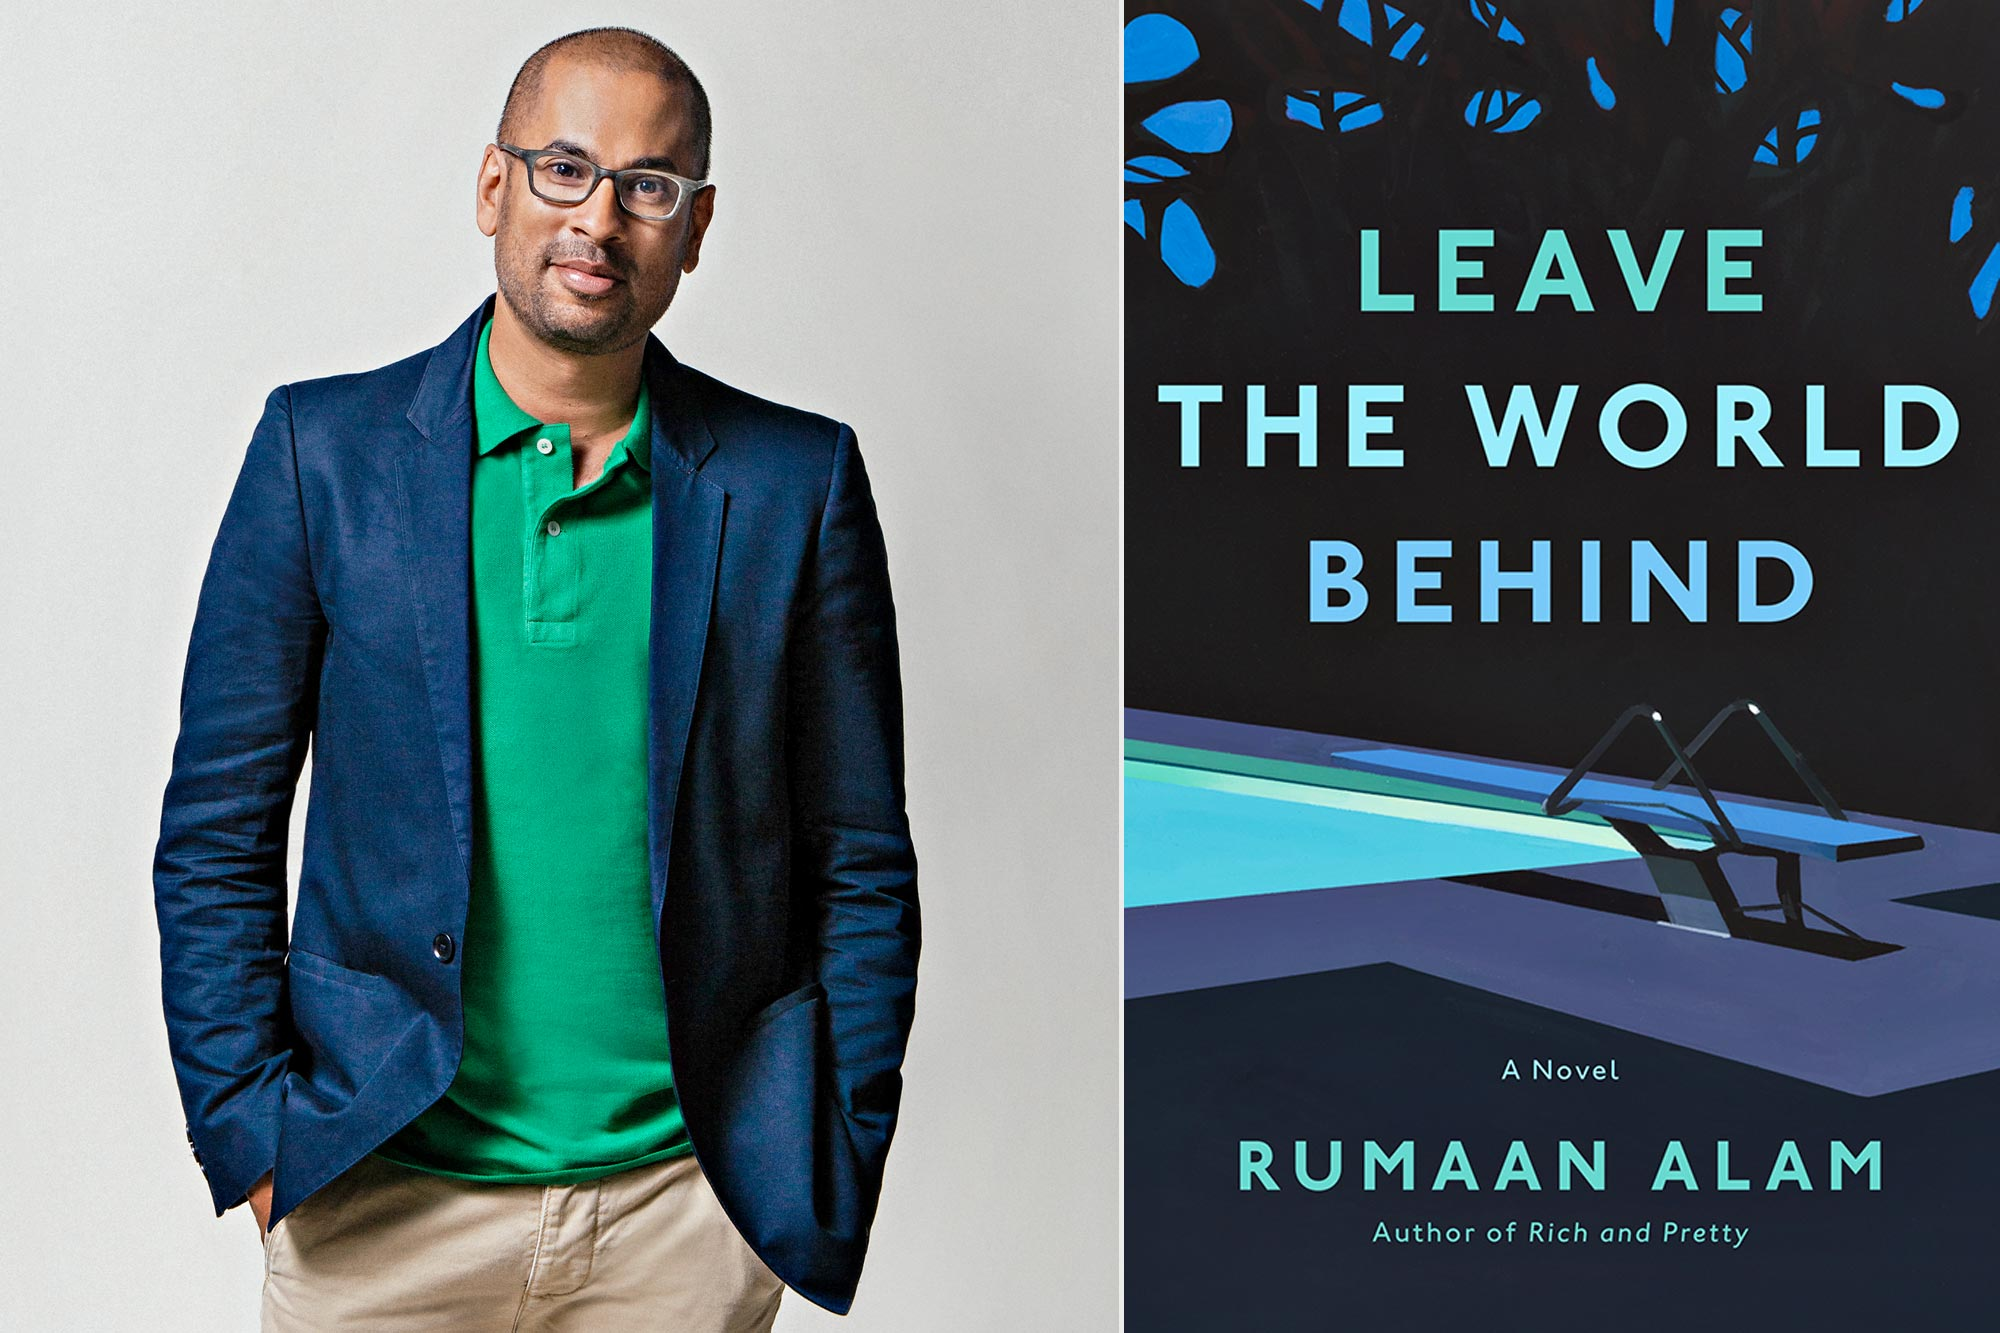 Leave the World Behind by Rumaan Alam